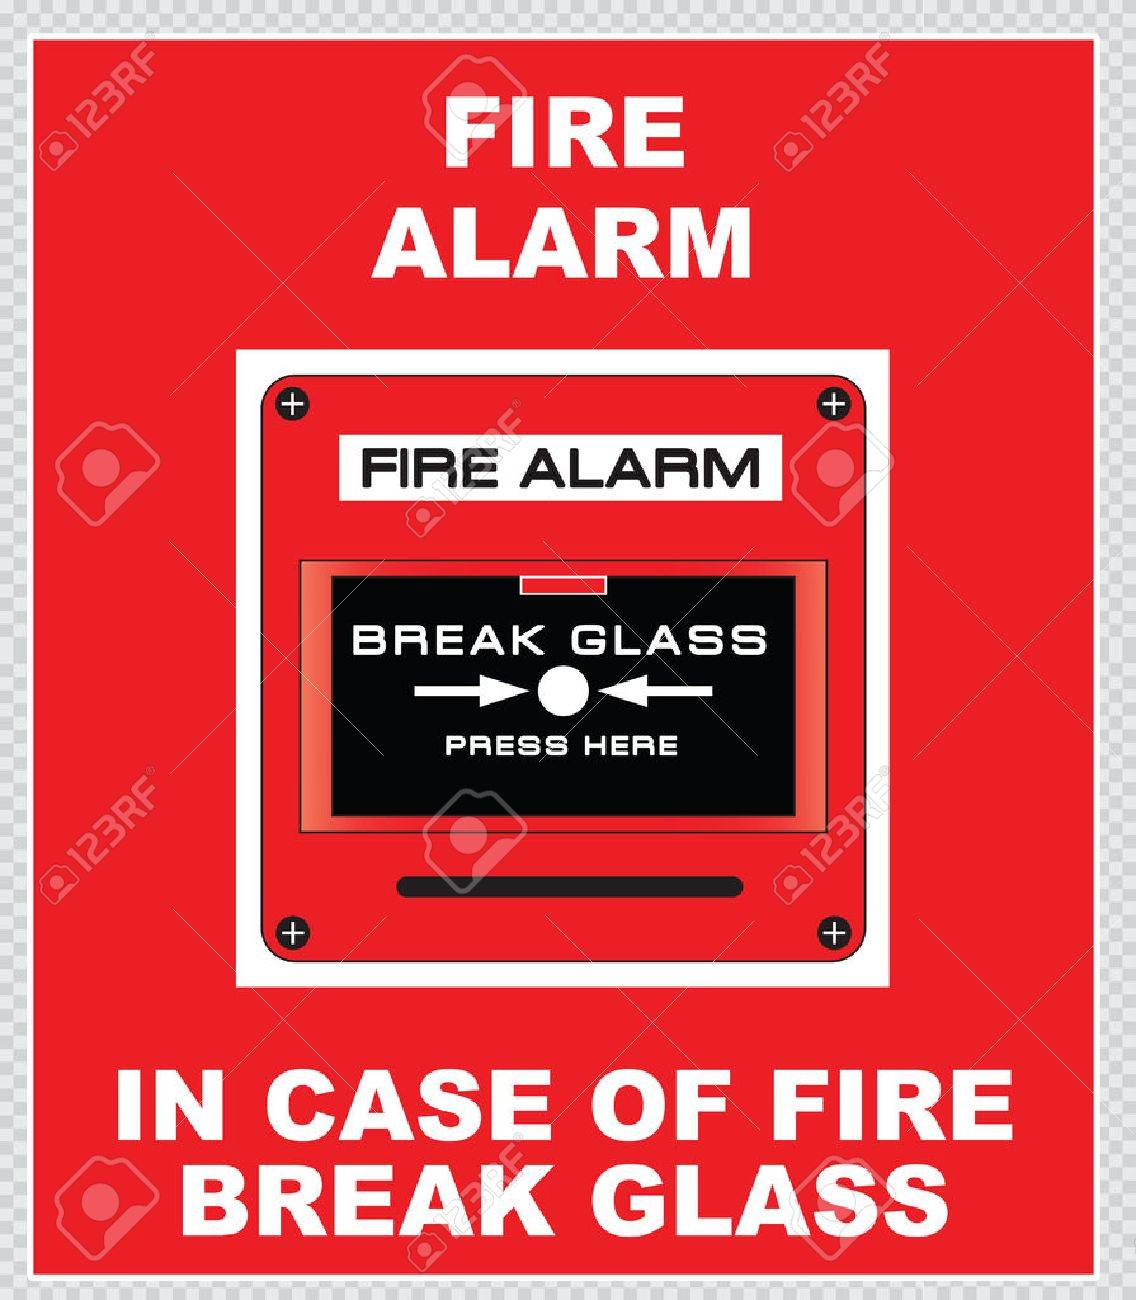 Fire Alarm fire alarm break glass press here fire exit for emergency use only emergency exit do not block fire extinguisher easy to modify - 40815422